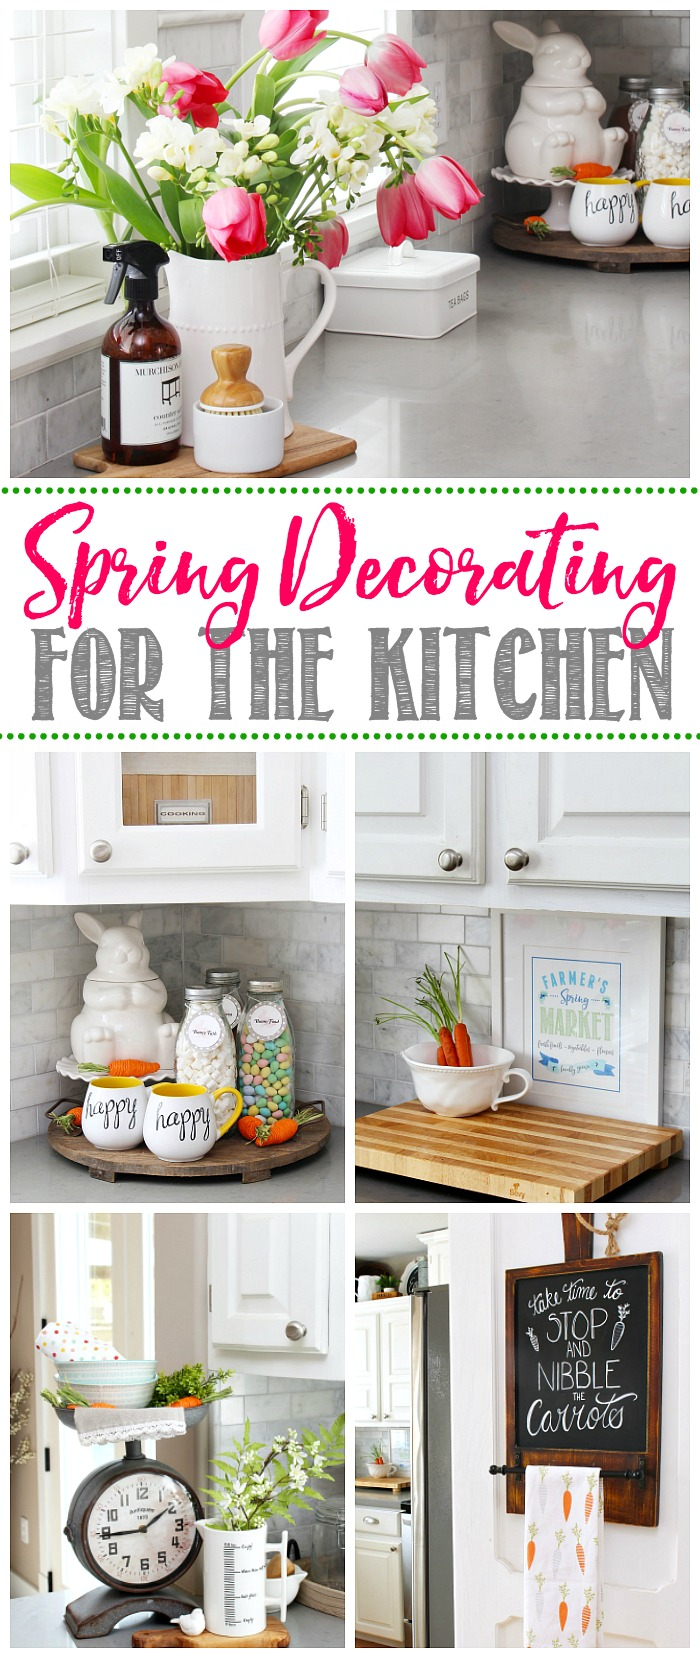 Farmhouse style white kitchen decorated for spring.